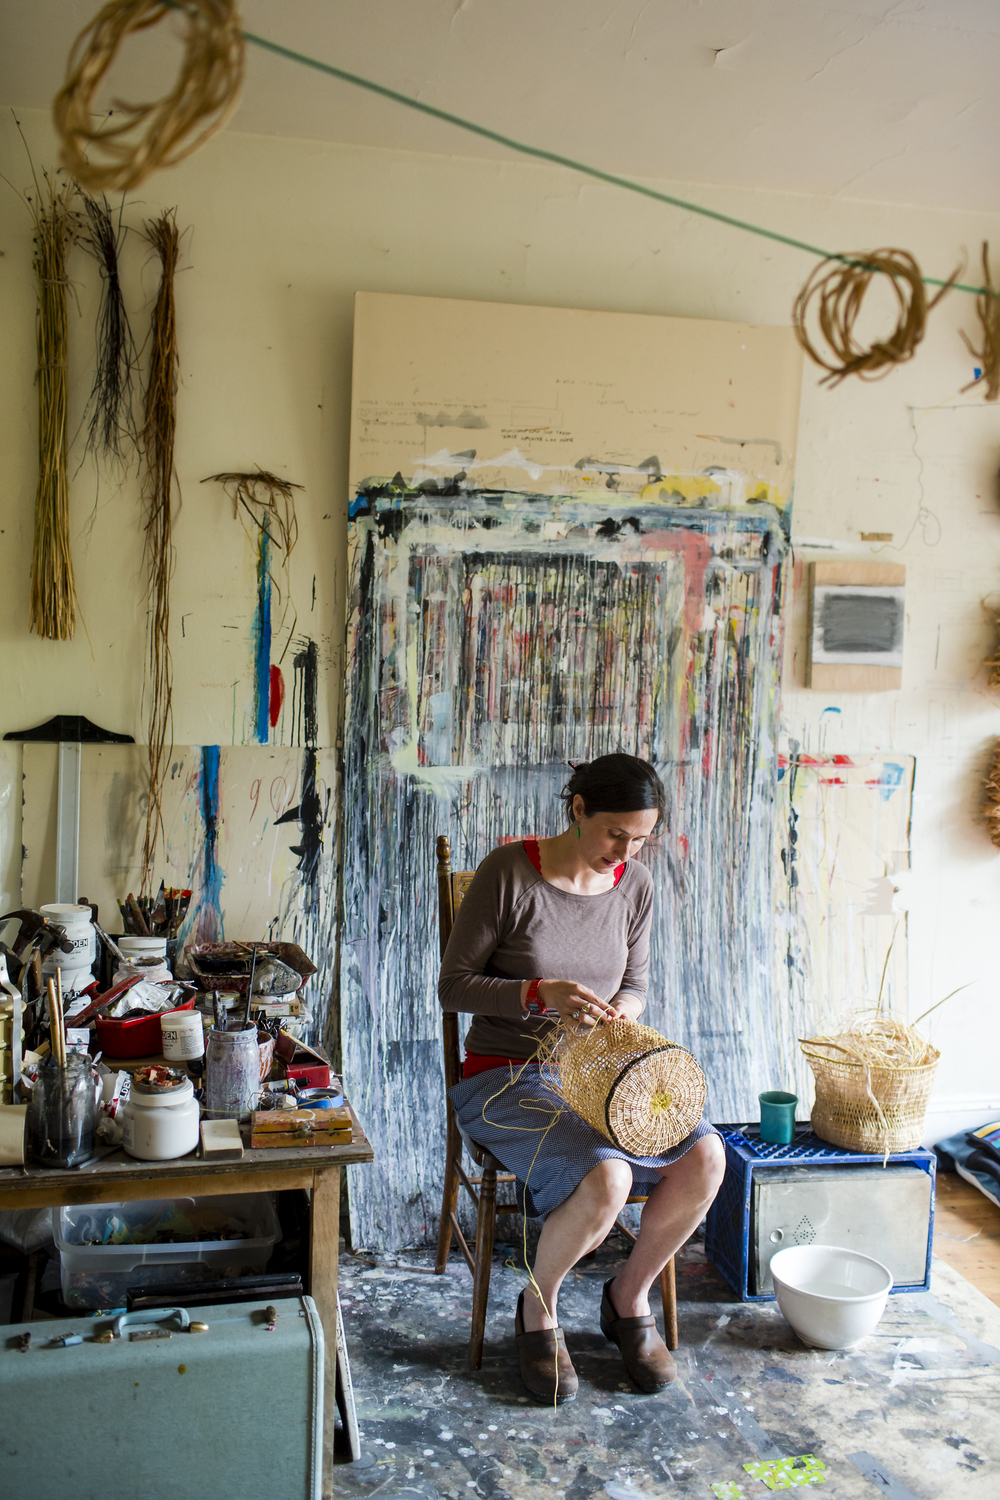 On Tuesday, May 12th 2015 Artist and Educator Sara Siestreem (Hanis Coos and American, 1976-) works on a basket at her home and studio in Portland, OR.  Siestreem is from the Umpqua River Valley in southwestern Oregon. Siestreem graduated Phi Kappa Phi with a BS from PSU in 2005. She earned an MFA with distinction from Pratt Art Institute in 2007. She is represented by Augen Gallery in Portland and her work has been shown in museums and figures in prestigious private and public collections nationally. She teaches studio arts at PSU and Tribal Museum Studies for Northwest Indian College. She serves as a consultant and free lance educator for museums and cultural groups regionally. Siestreem also serves various youth organizations and individuals in the role of mentor, workshop leader, promoter, public speaker and volunteer.